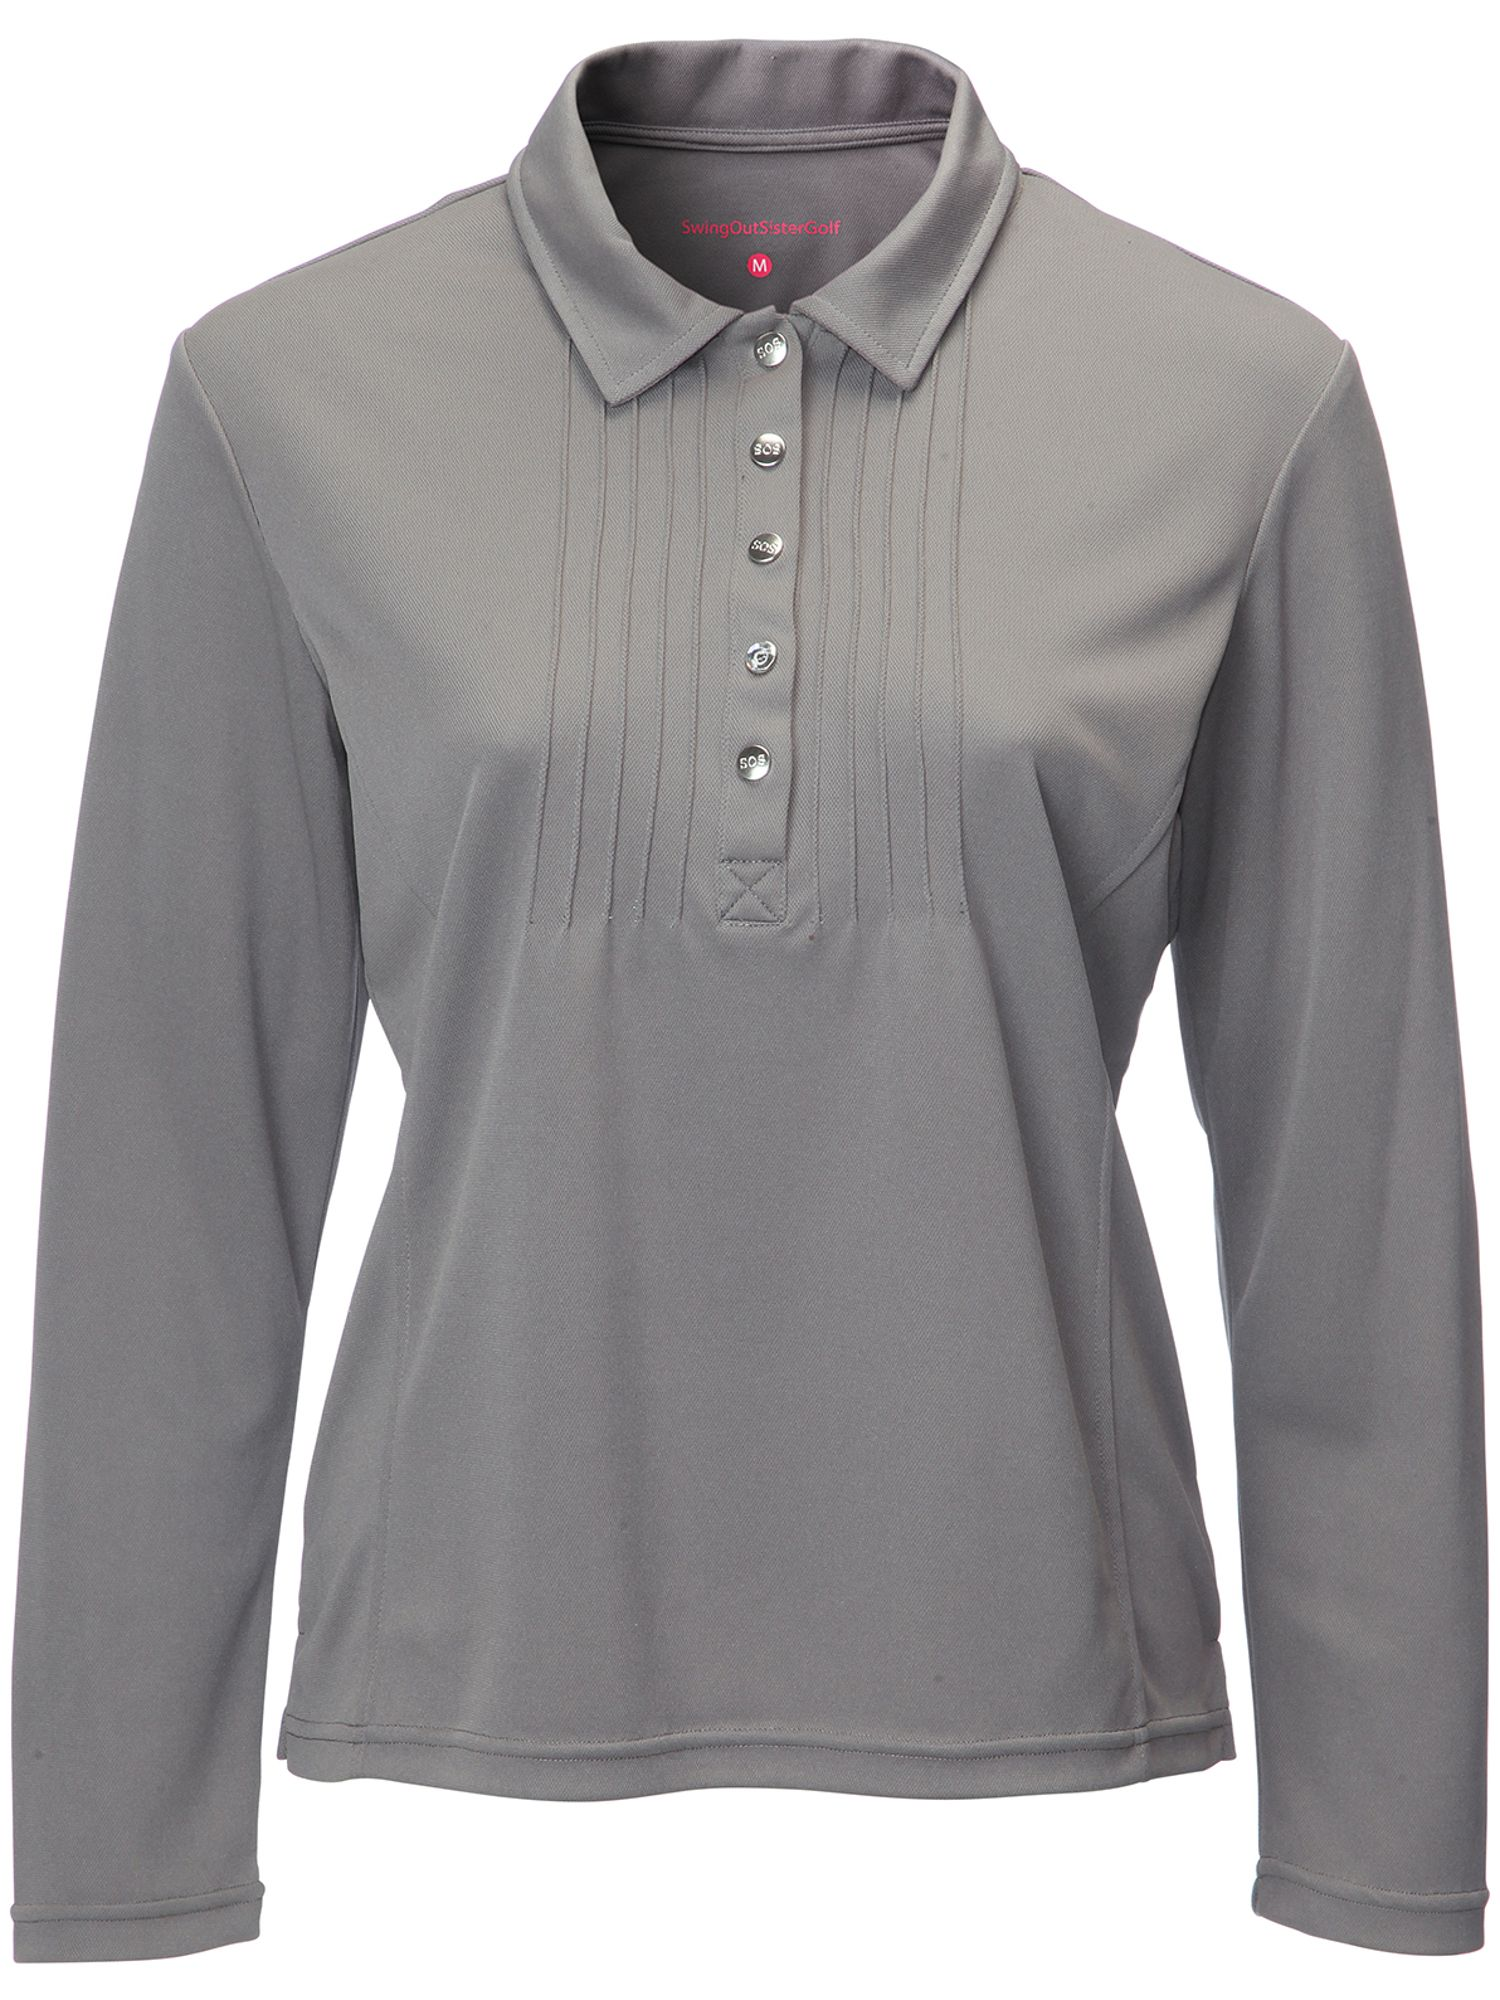 Swing Out Sister Whitney Pique Long Sleeve Shirt, Grey